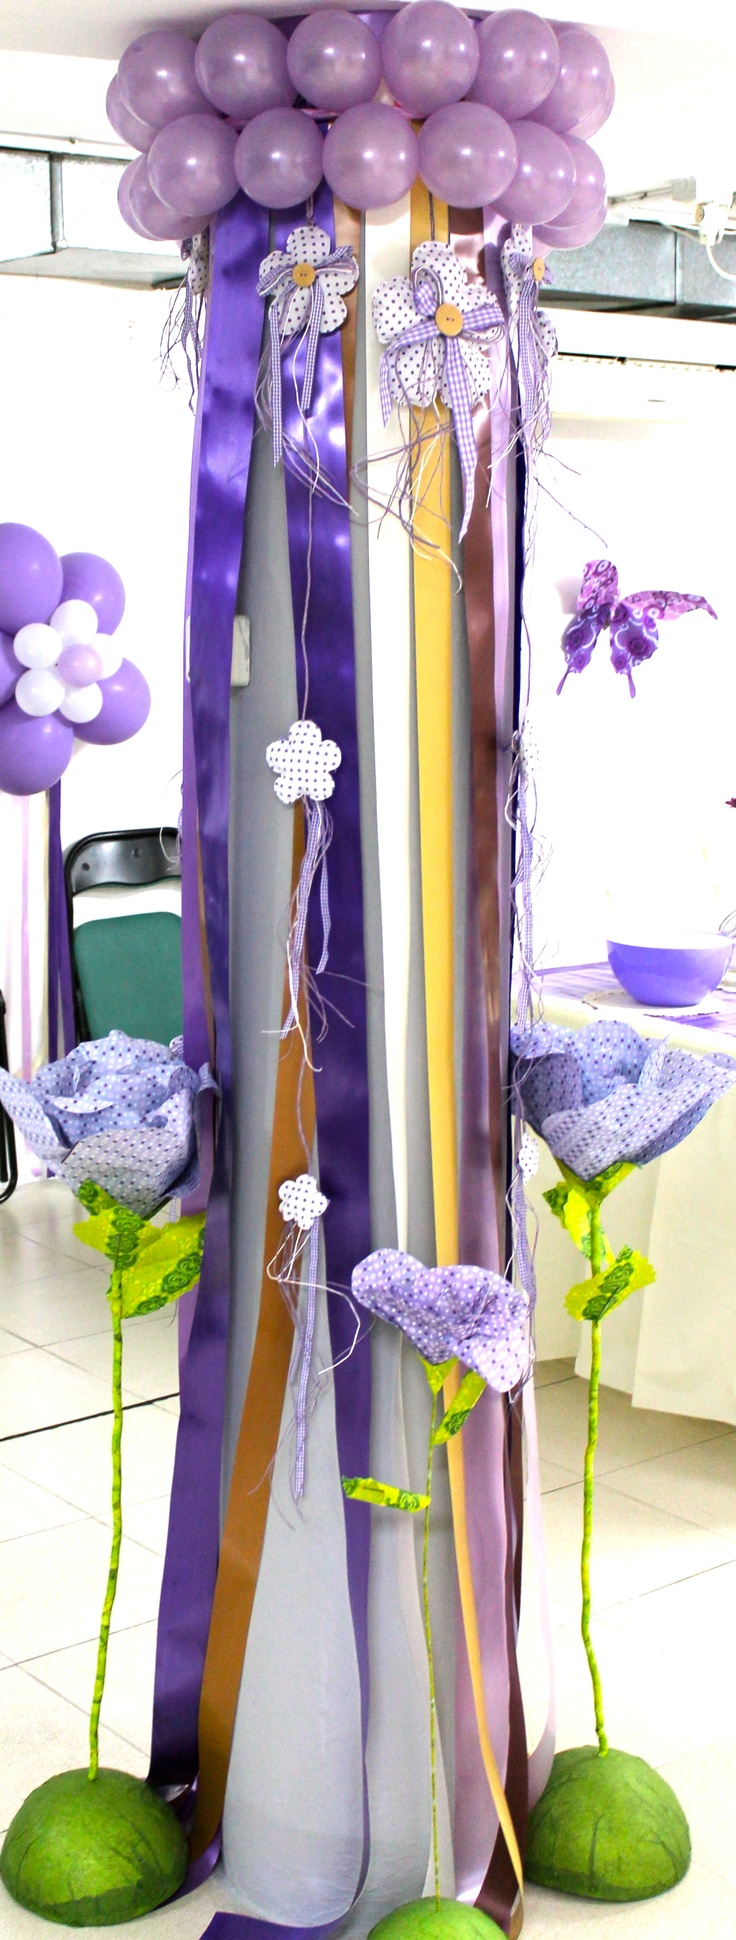 2318 best balloon ideas images on pinterest anniversary - Como decorar columnas ...